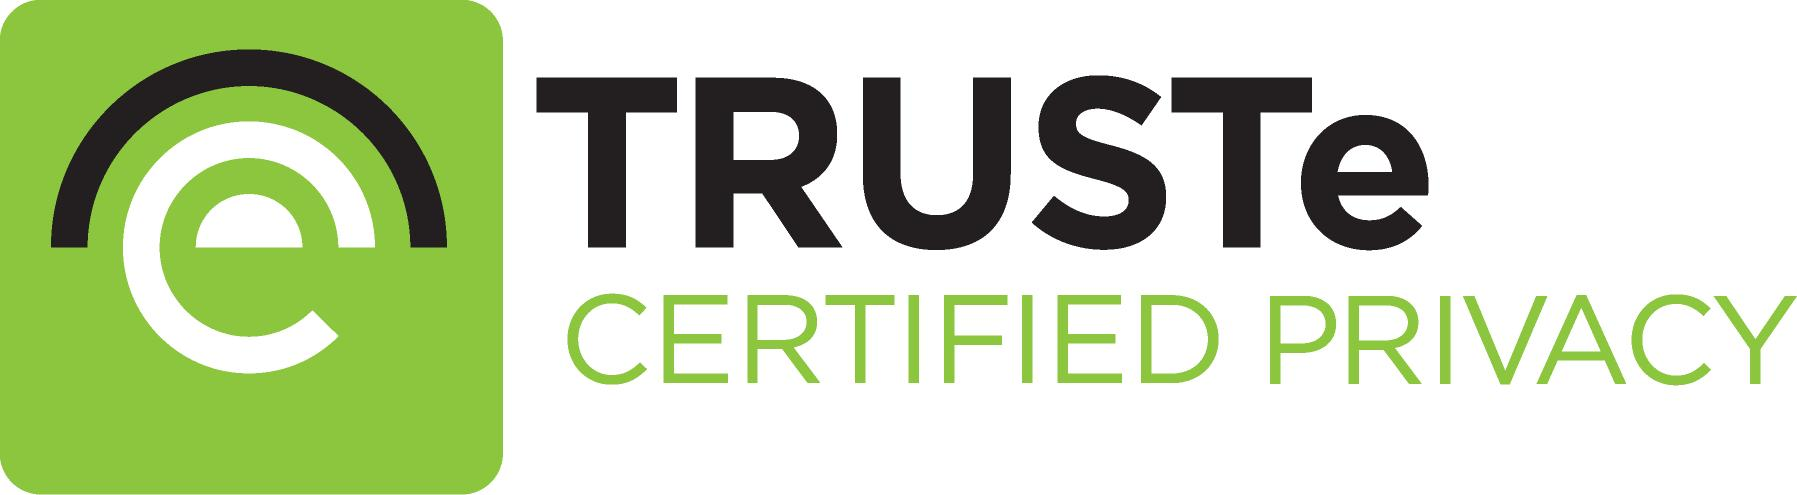 TRUSTe To Pay $200K Fine In Settlement With FTC Over Allegations It Deceived Consumers